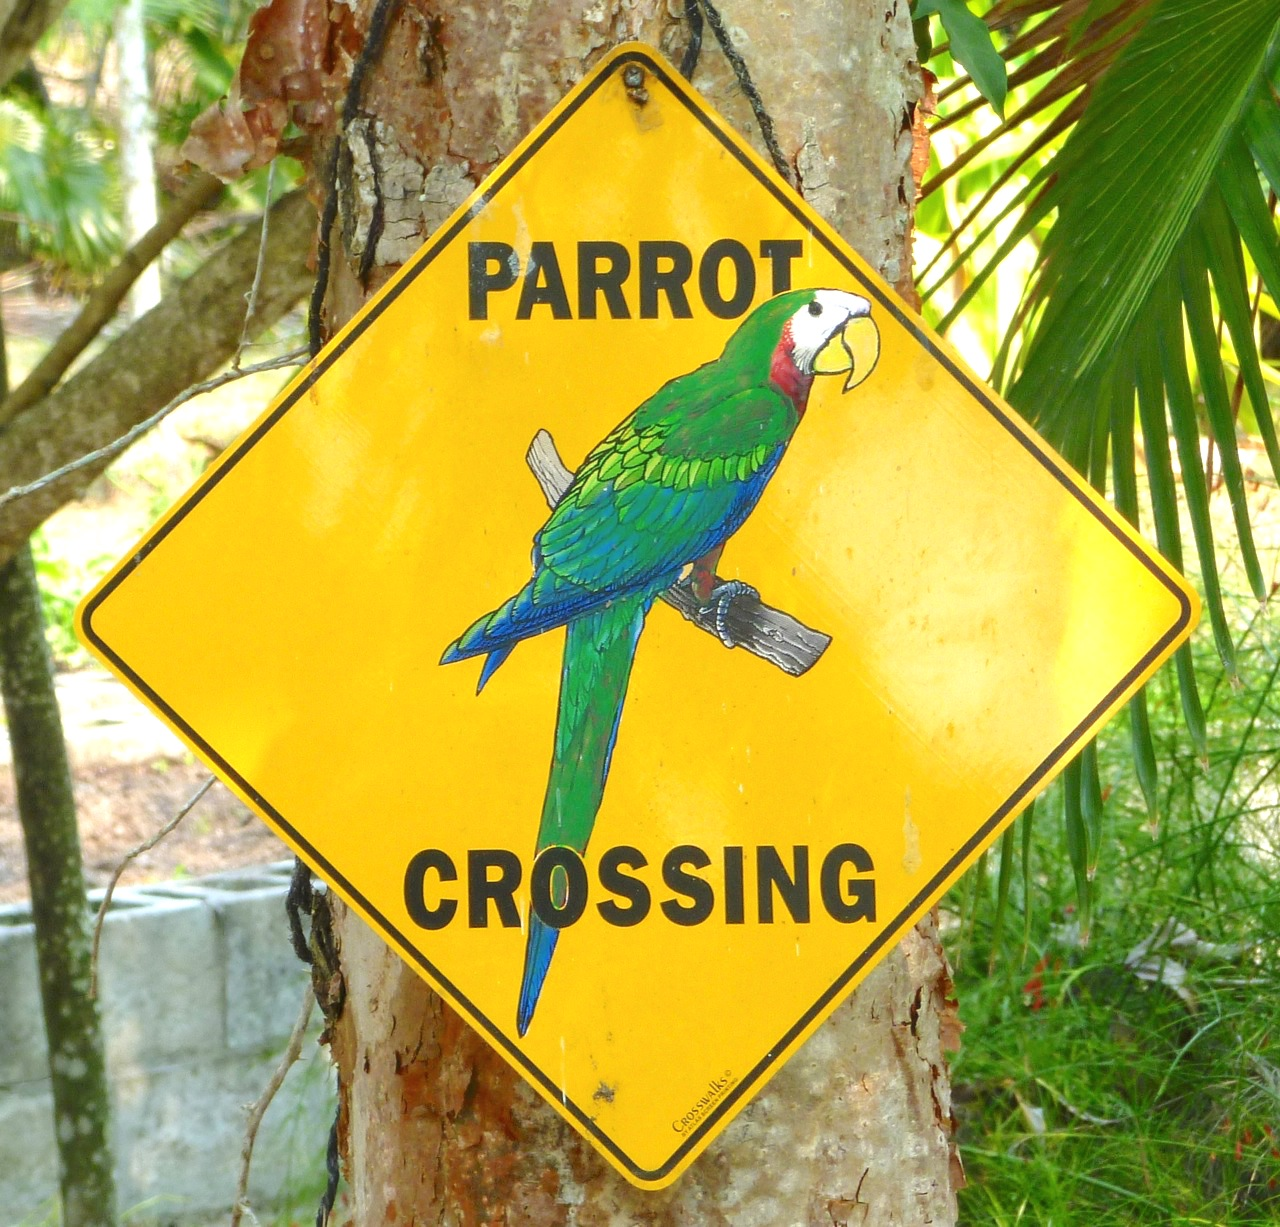 Parrot Crossing sign Abaco Bahamas (Keith Salvesen)